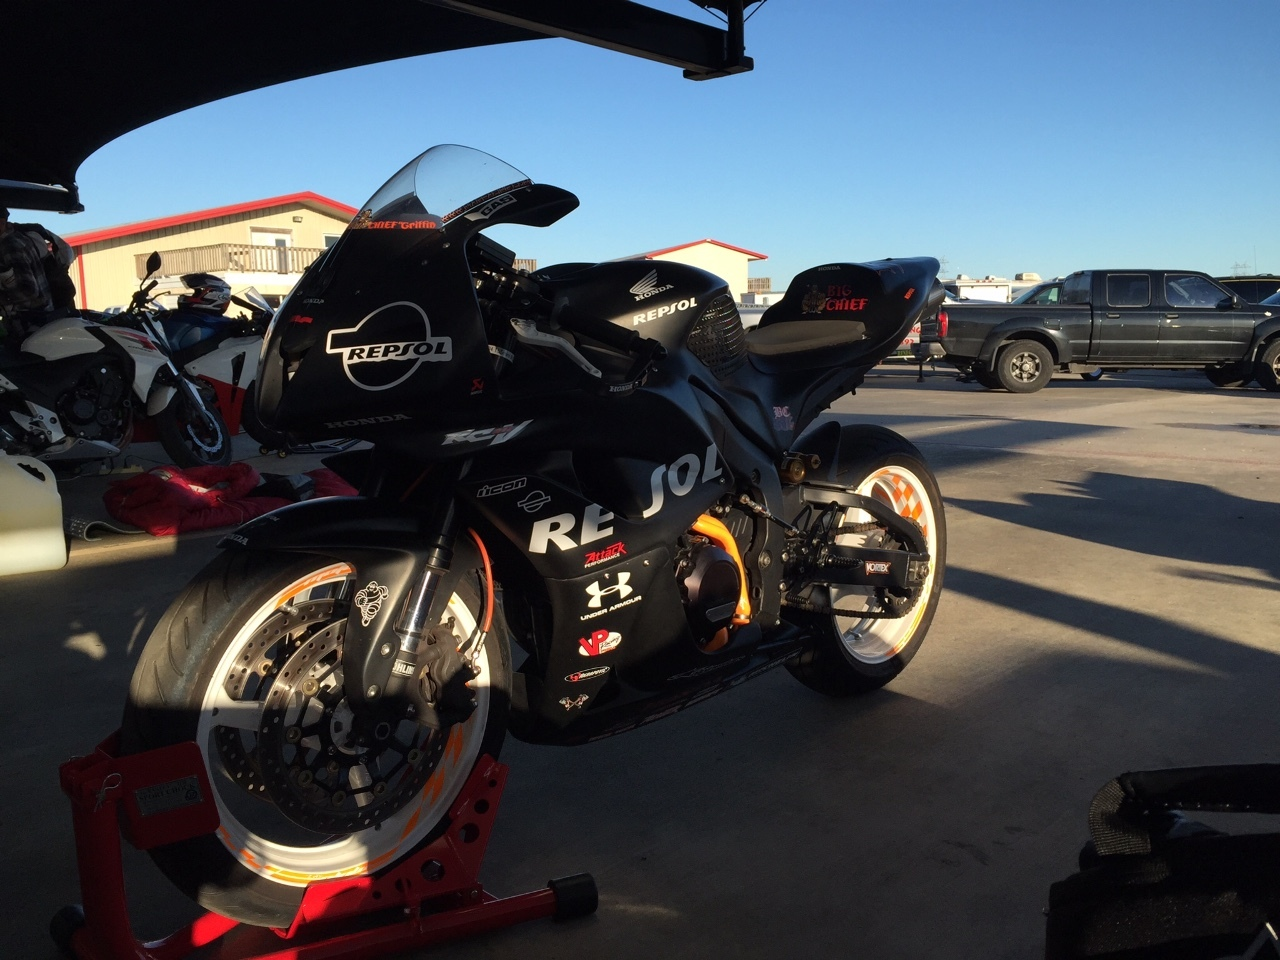 820 Honda Cbr600rr 600rr Motorcycles For Sale Cycle Trader